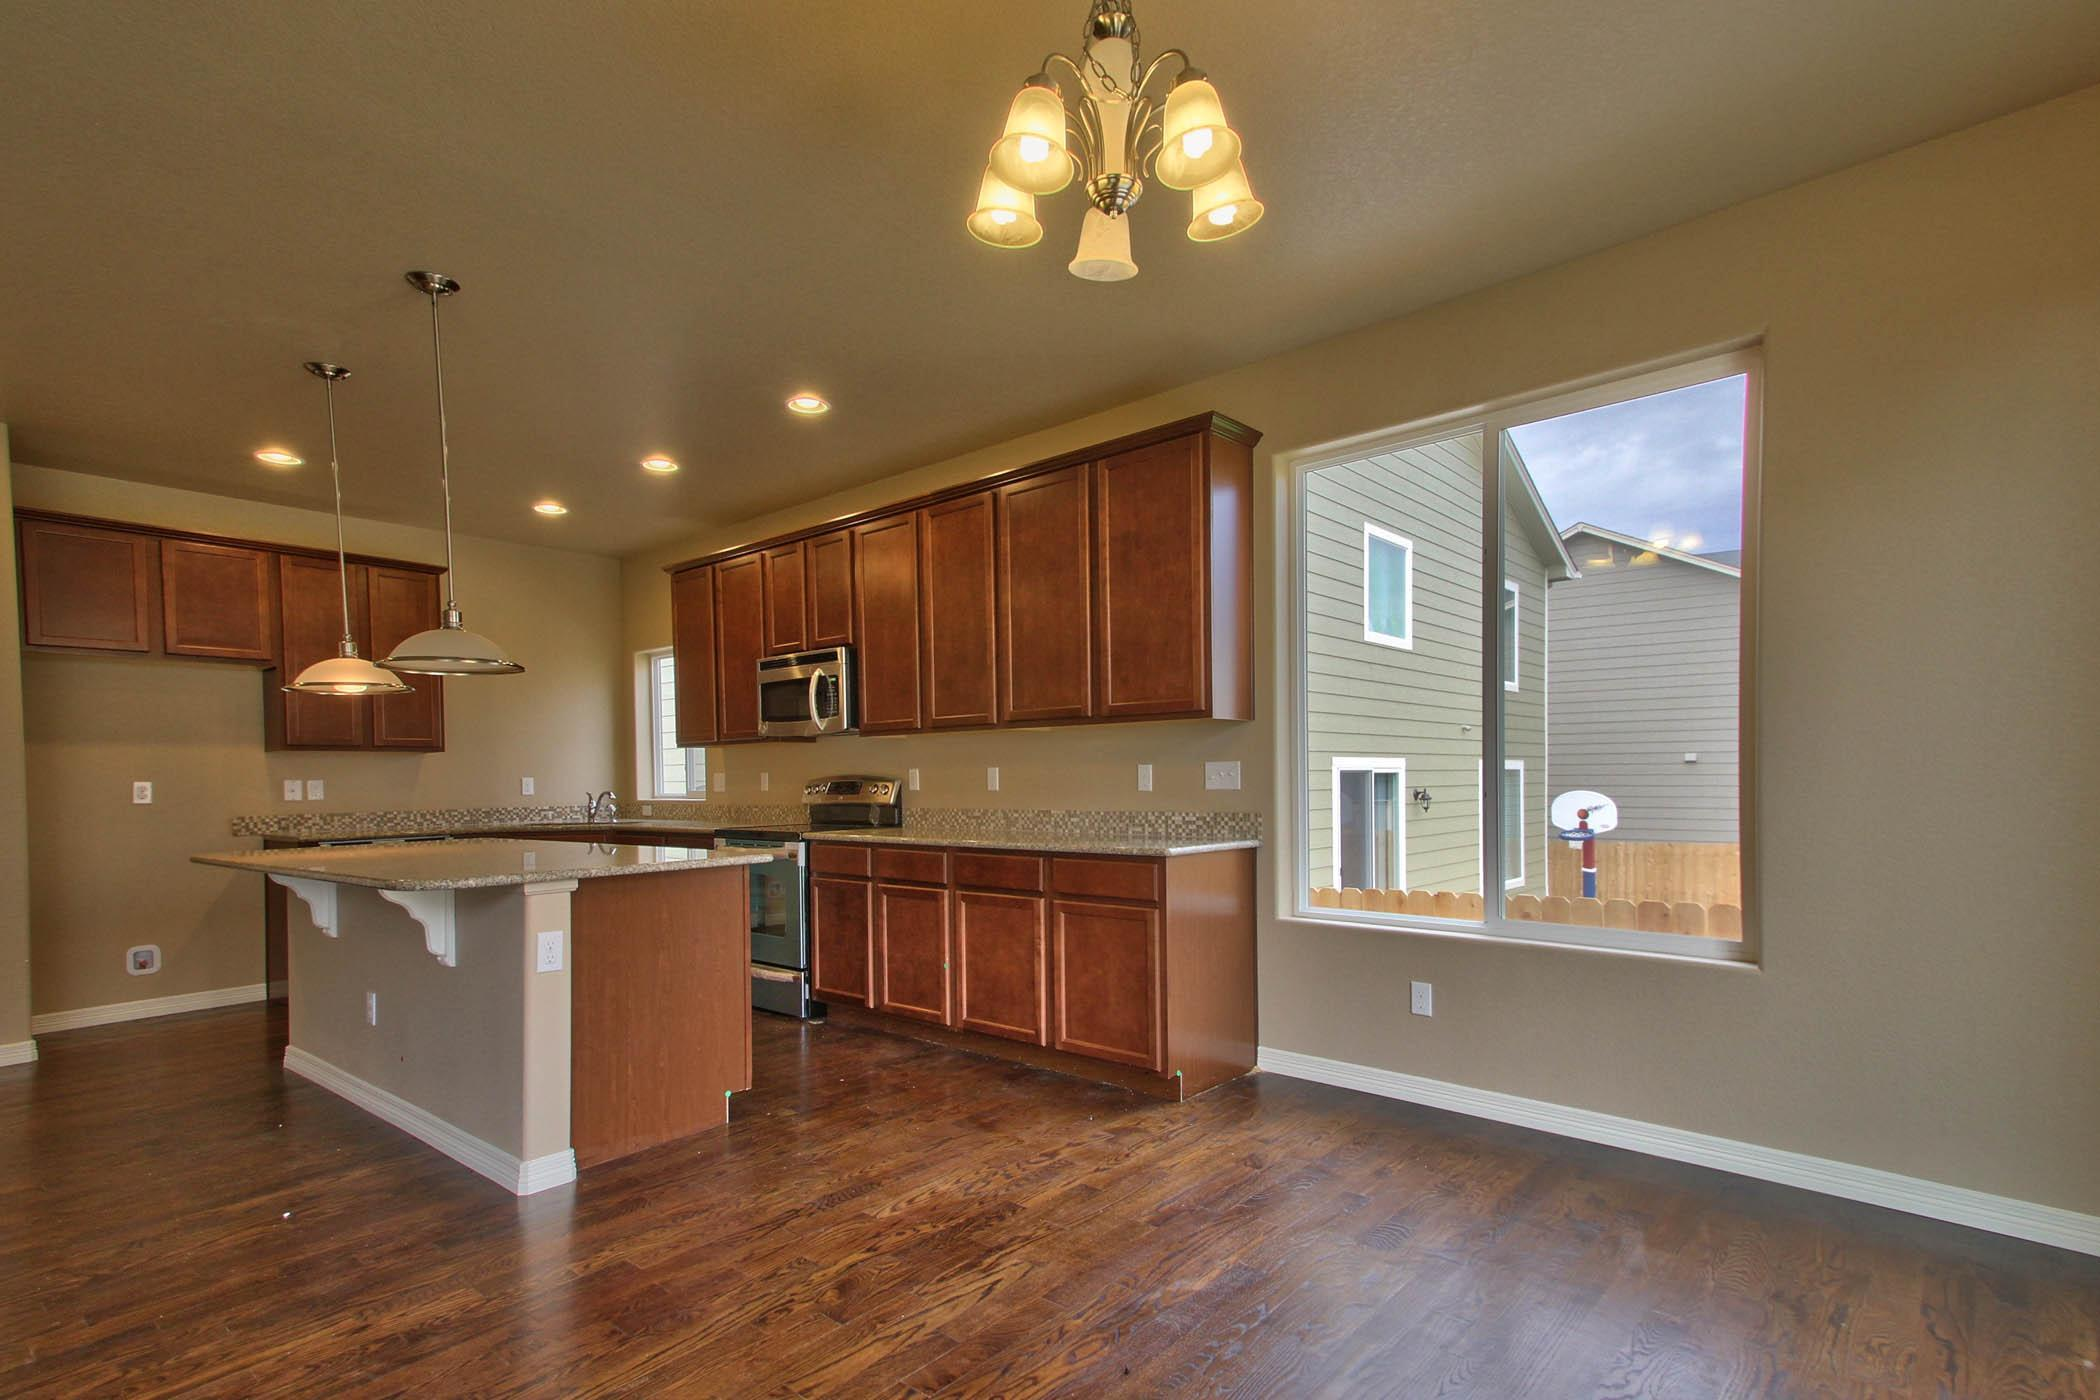 Kitchen featured in the Cutler (Finished Basement) By Reunion Homes in Colorado Springs, CO